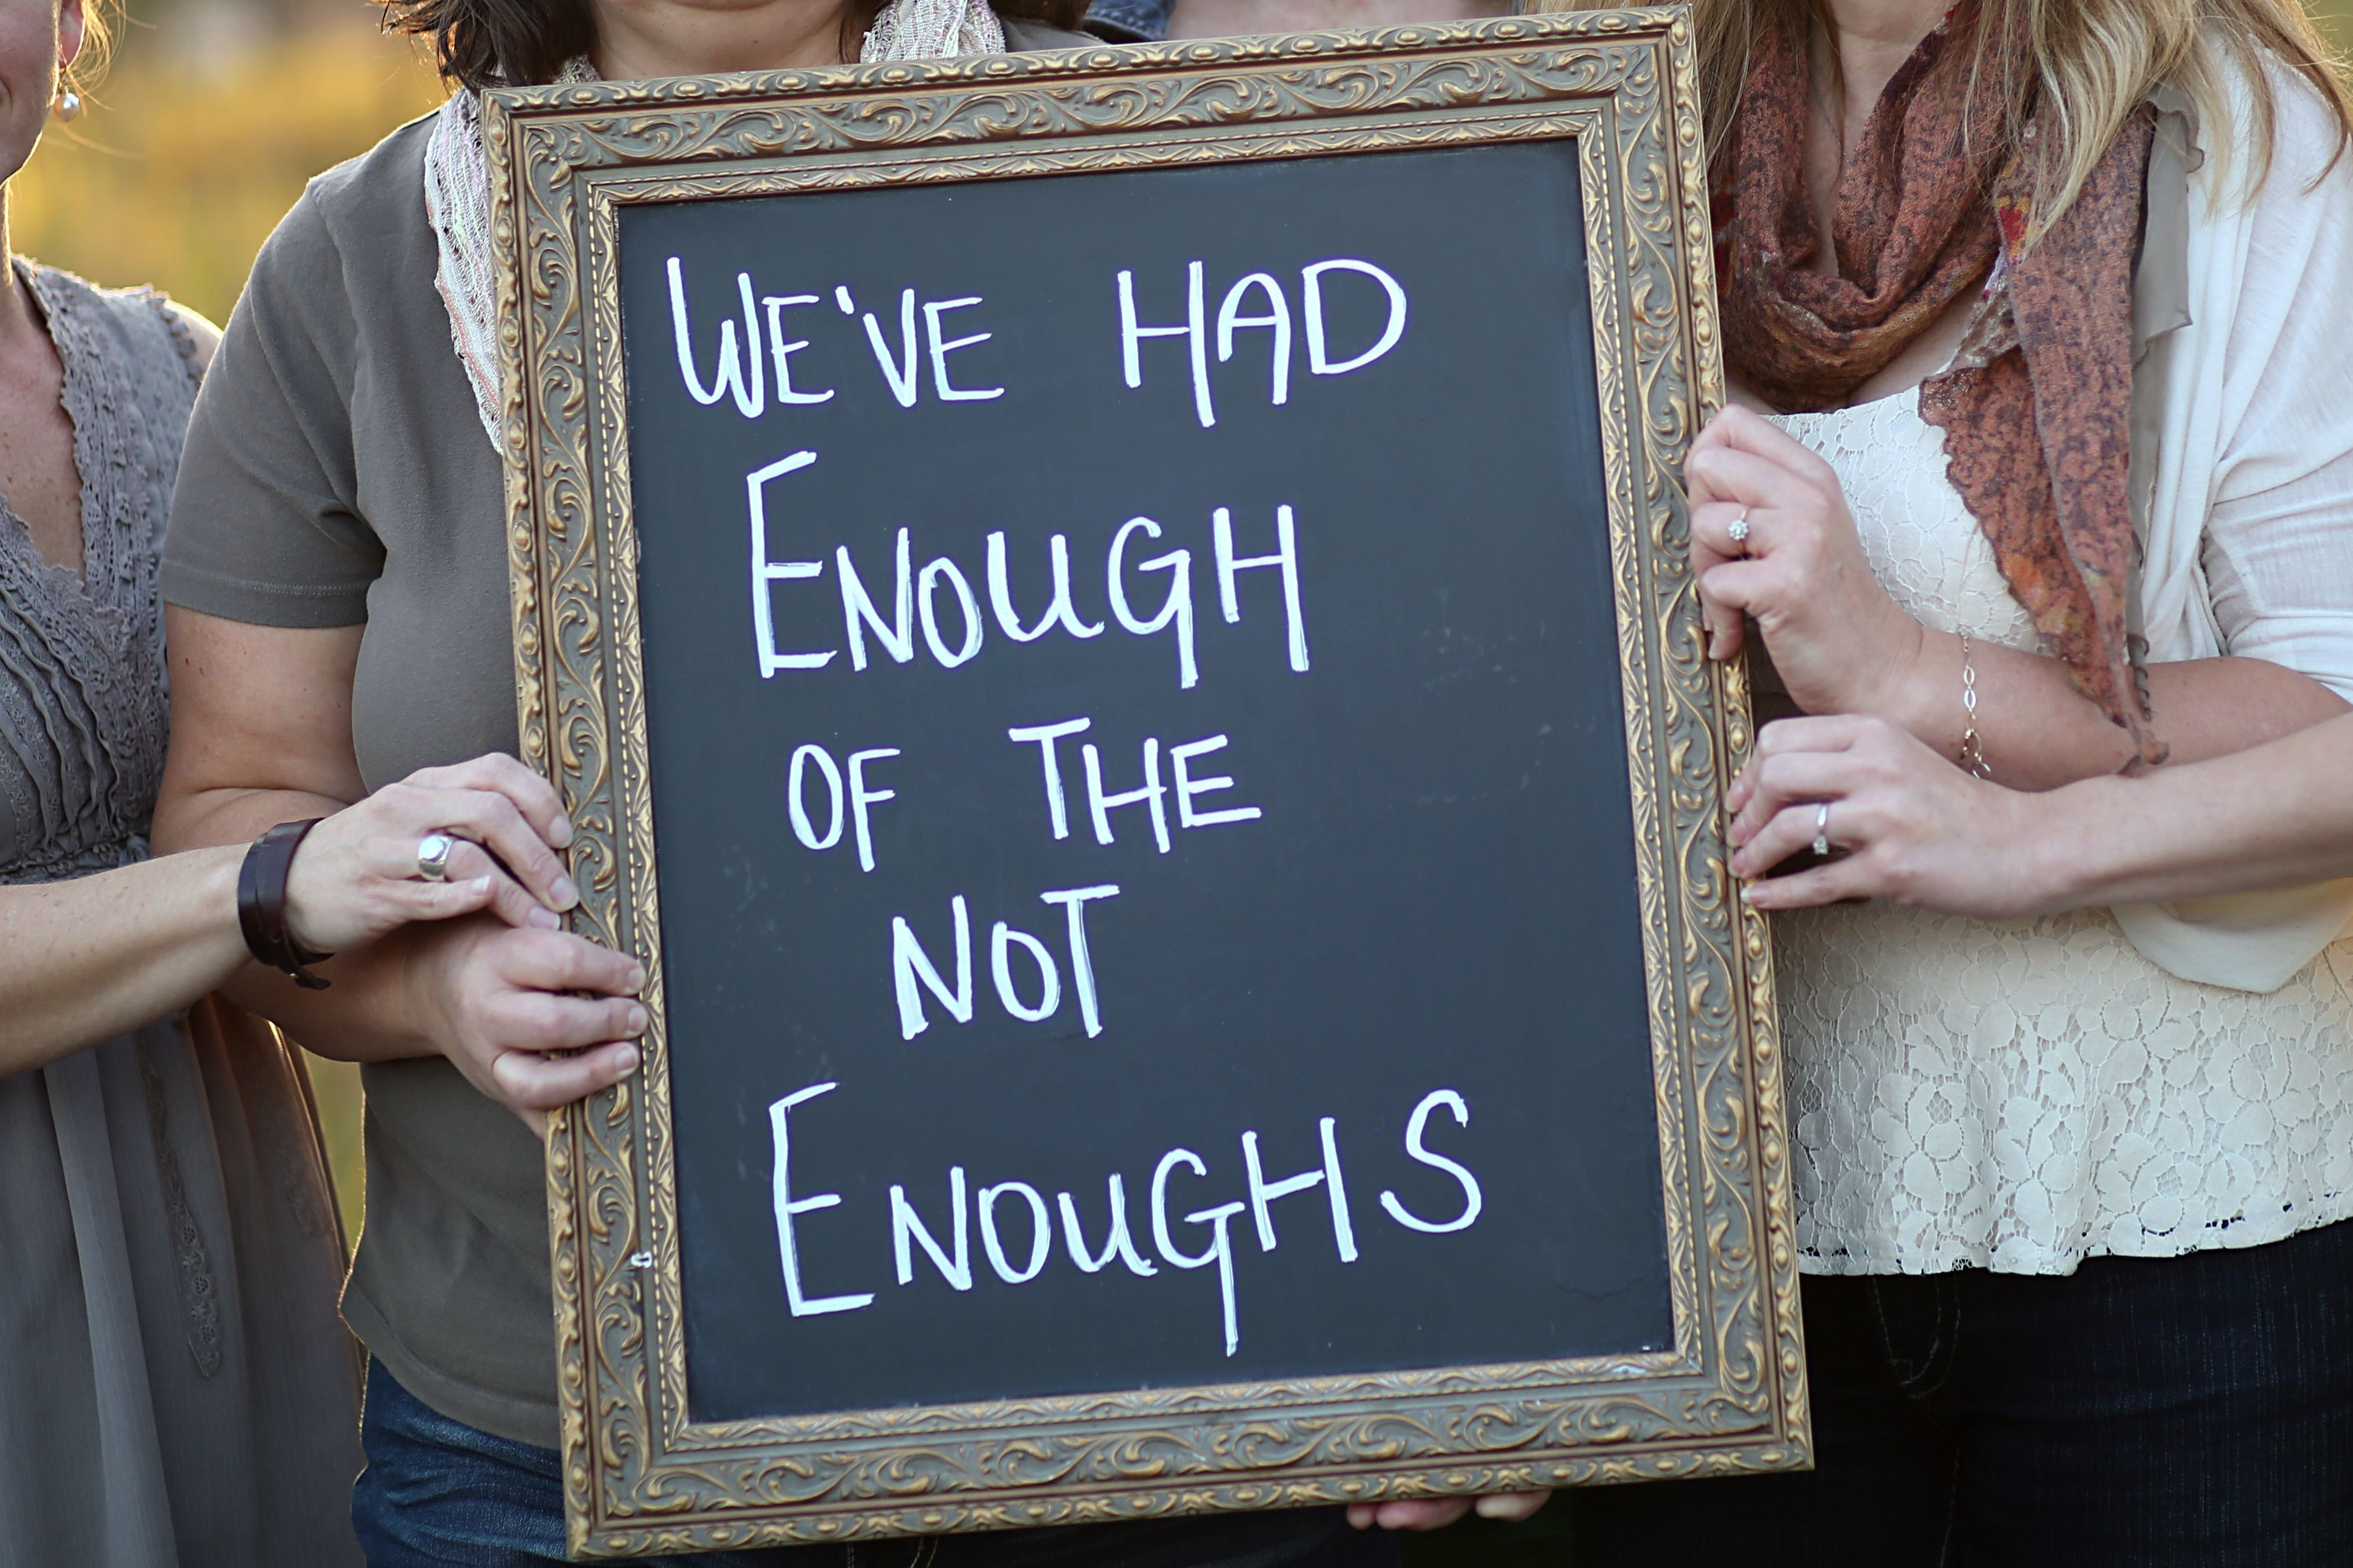 We've Had Enough of the NotEnoughs Words matter, Enough